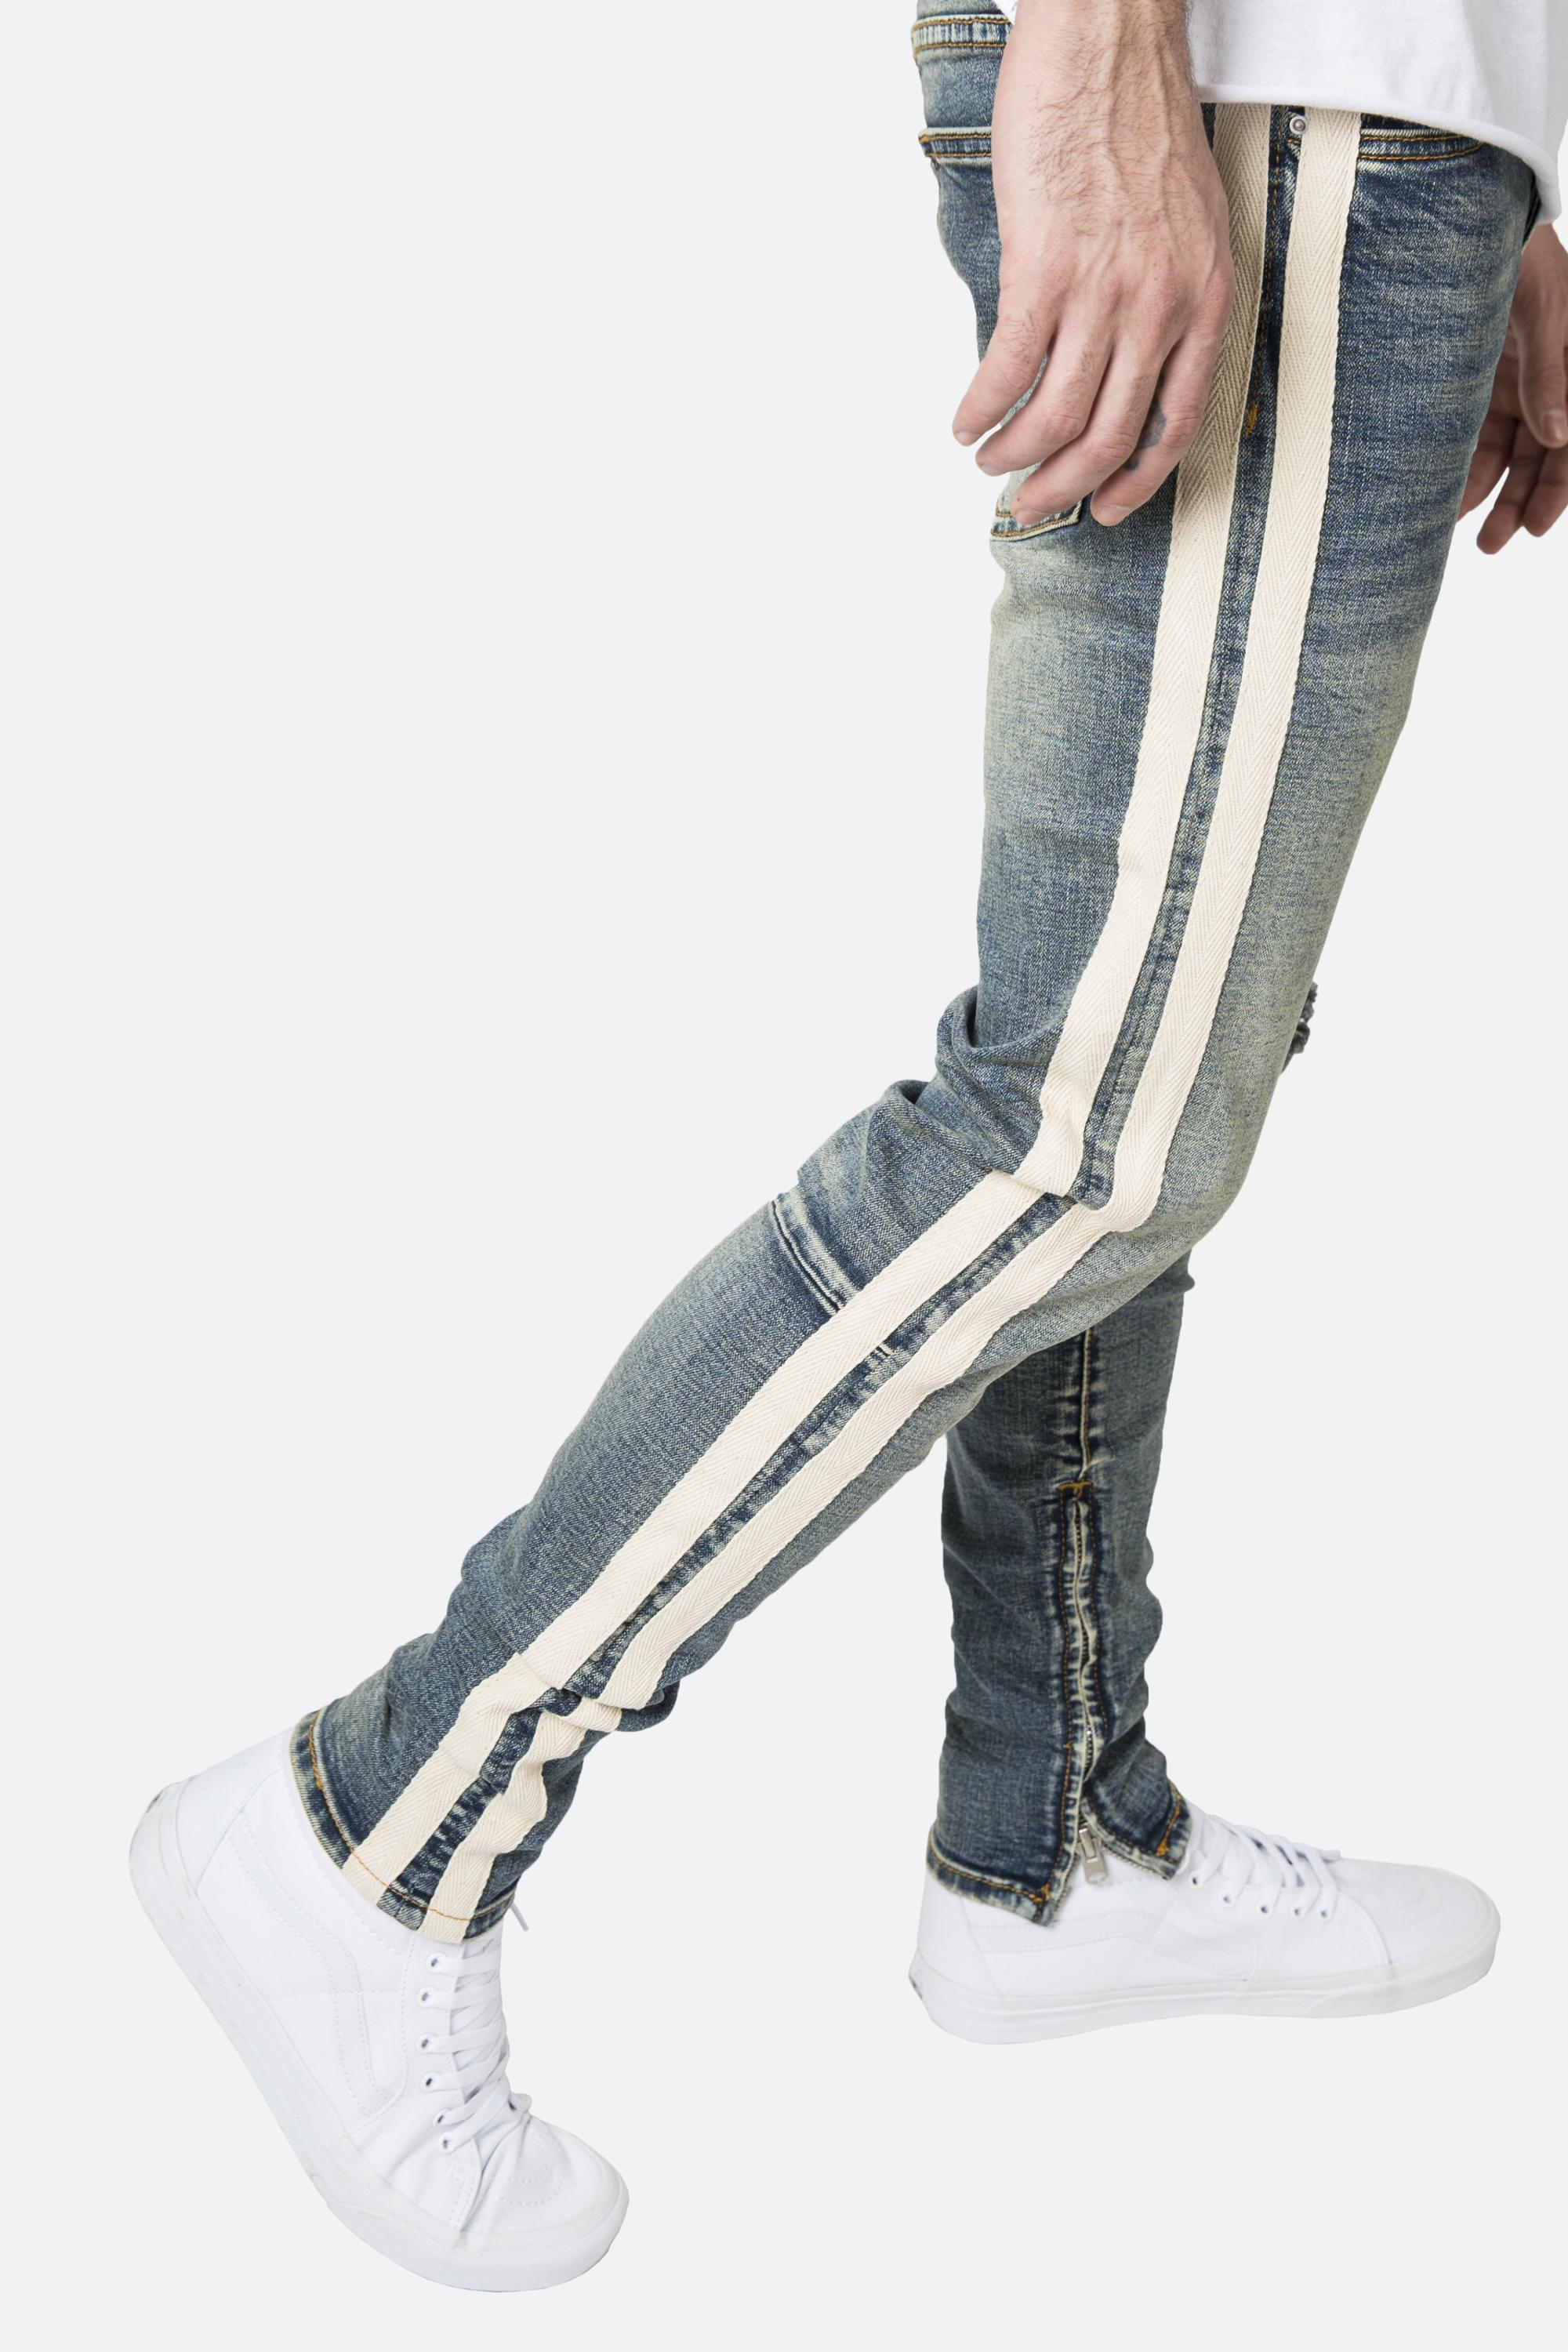 OEM track private label jeans factory